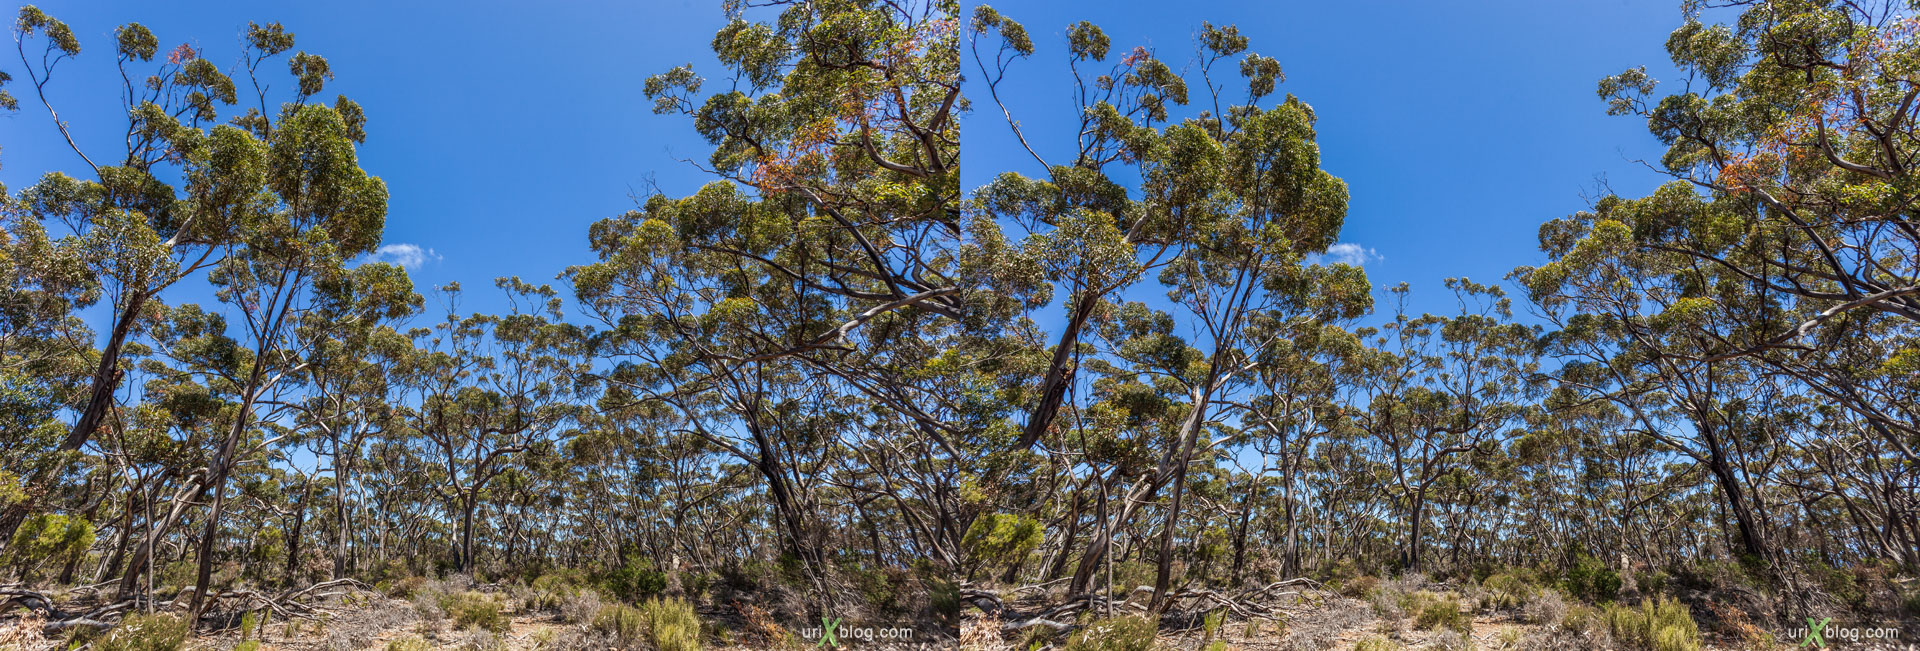 forest, cemetery, Cape Borda Lighthouse, Ravine Des Casoars Wilderness Protection Area, Kangaroo Island, Australia, 3D, stereo pair, cross-eyed, crossview, cross view stereo pair, stereoscopic, 2011